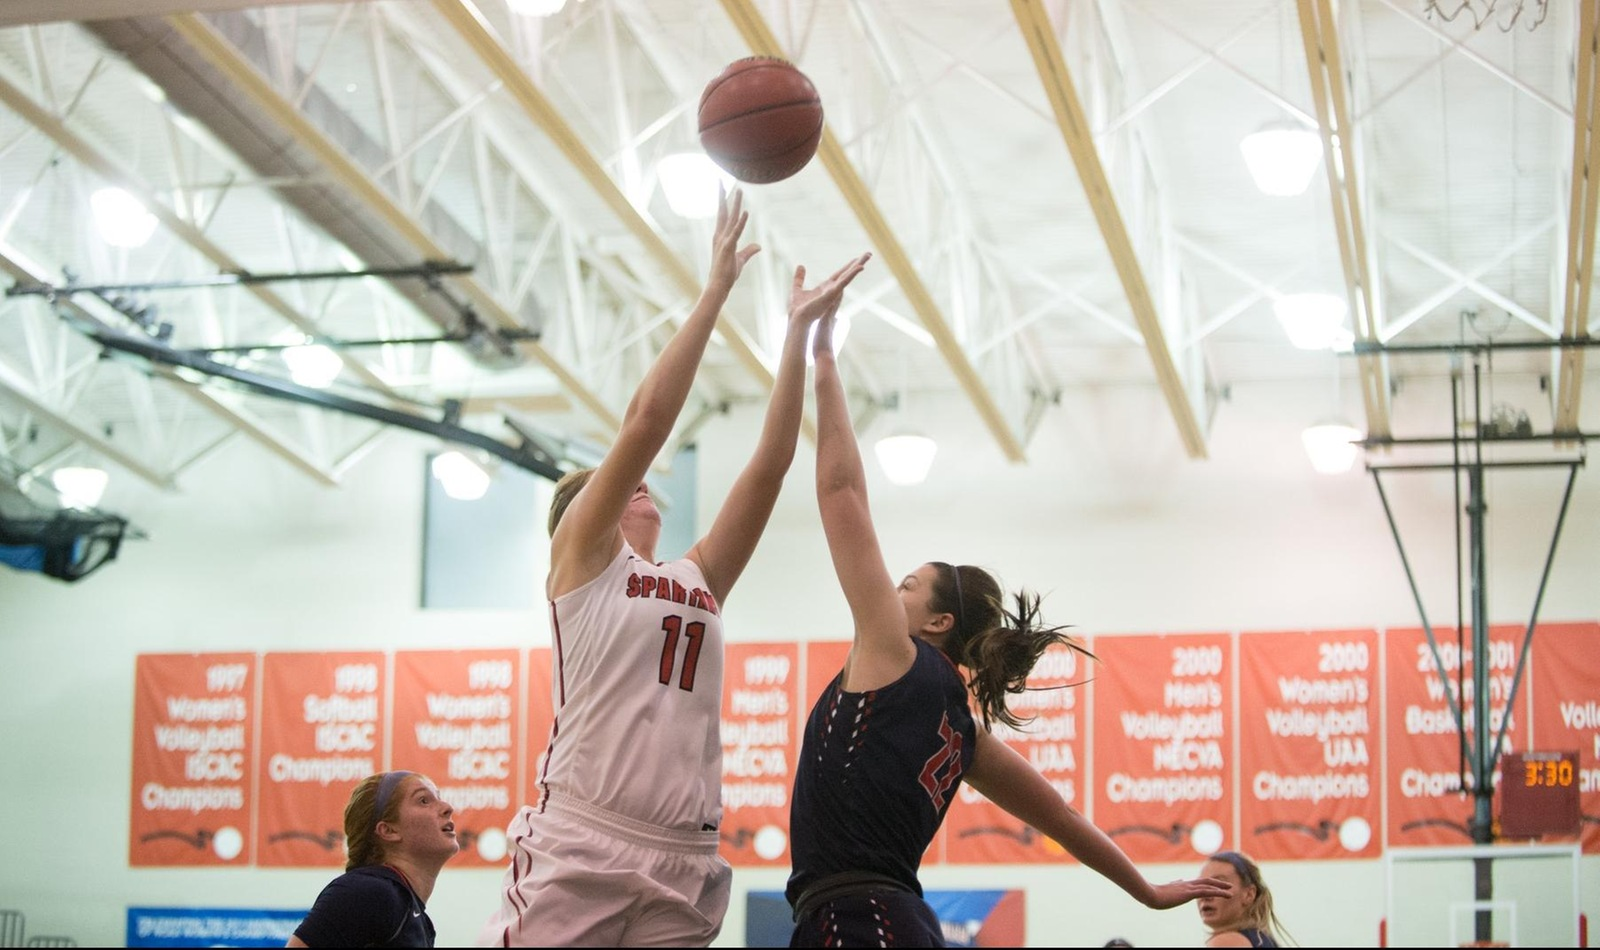 Evans Scores Career High, Hore Flirts with Quadruple-Double in Win over Morrisville